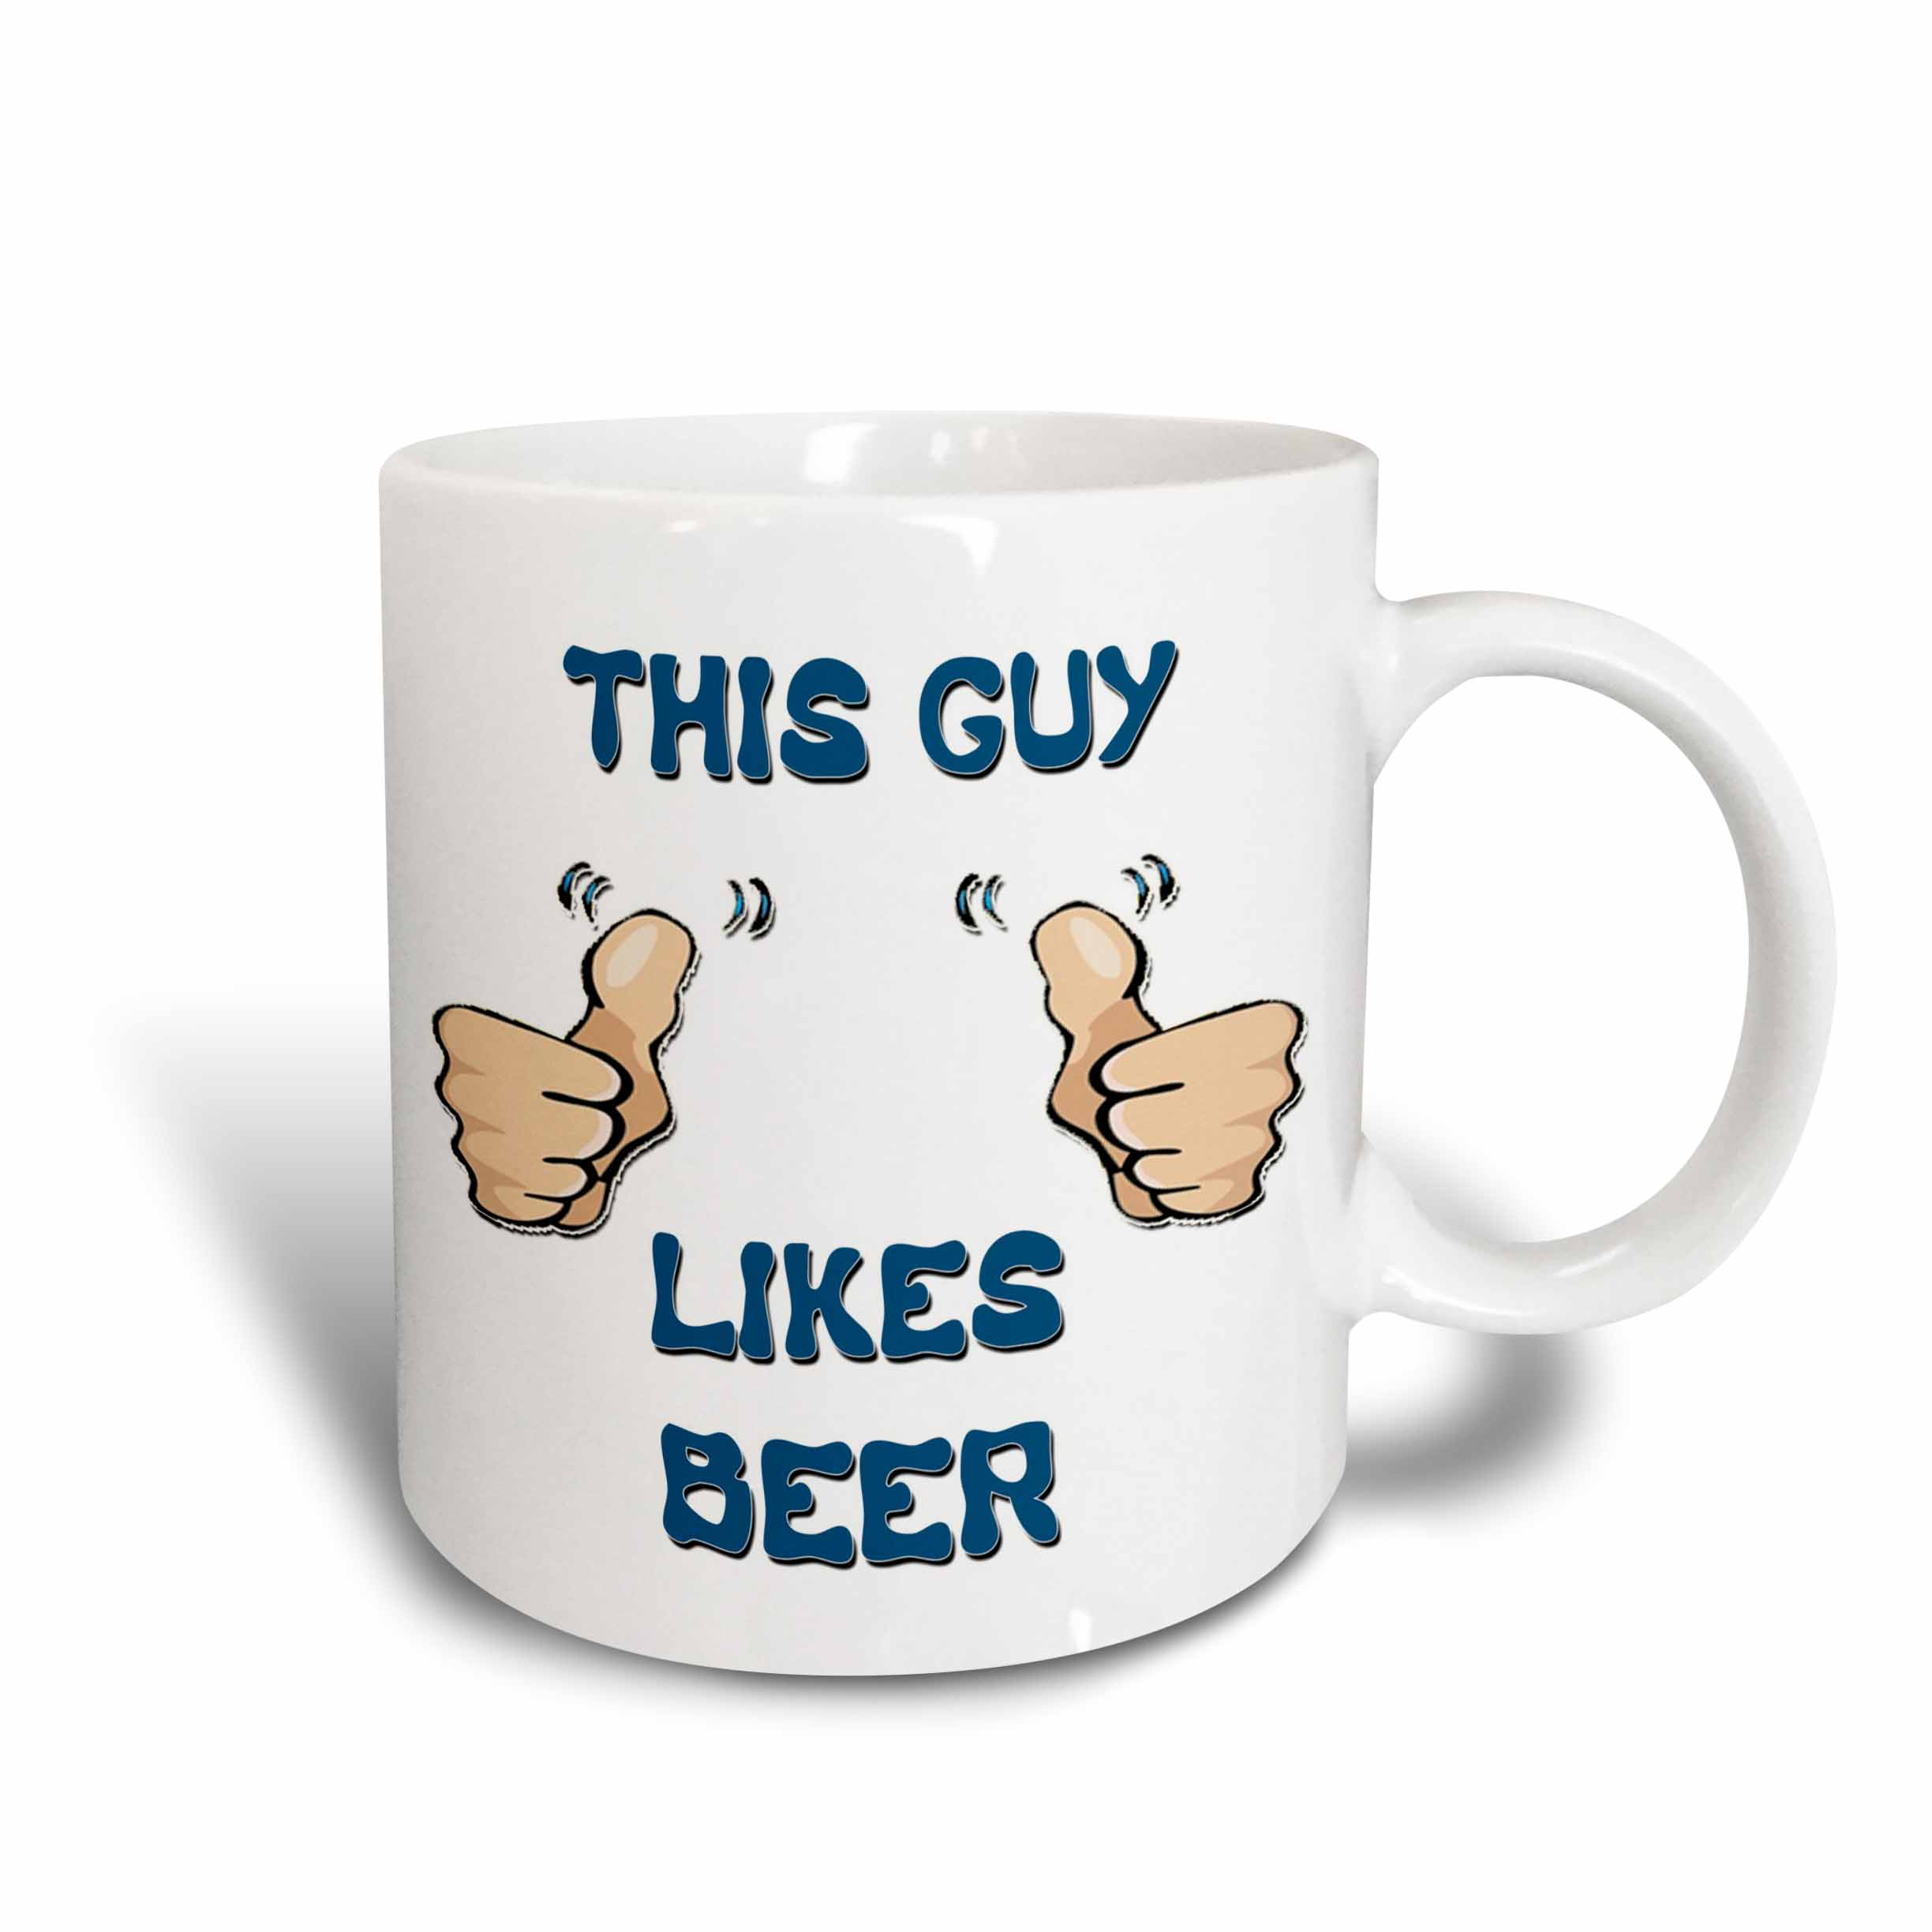 3dRose This Guy Likes Beer, Ceramic Mug, 11-ounce